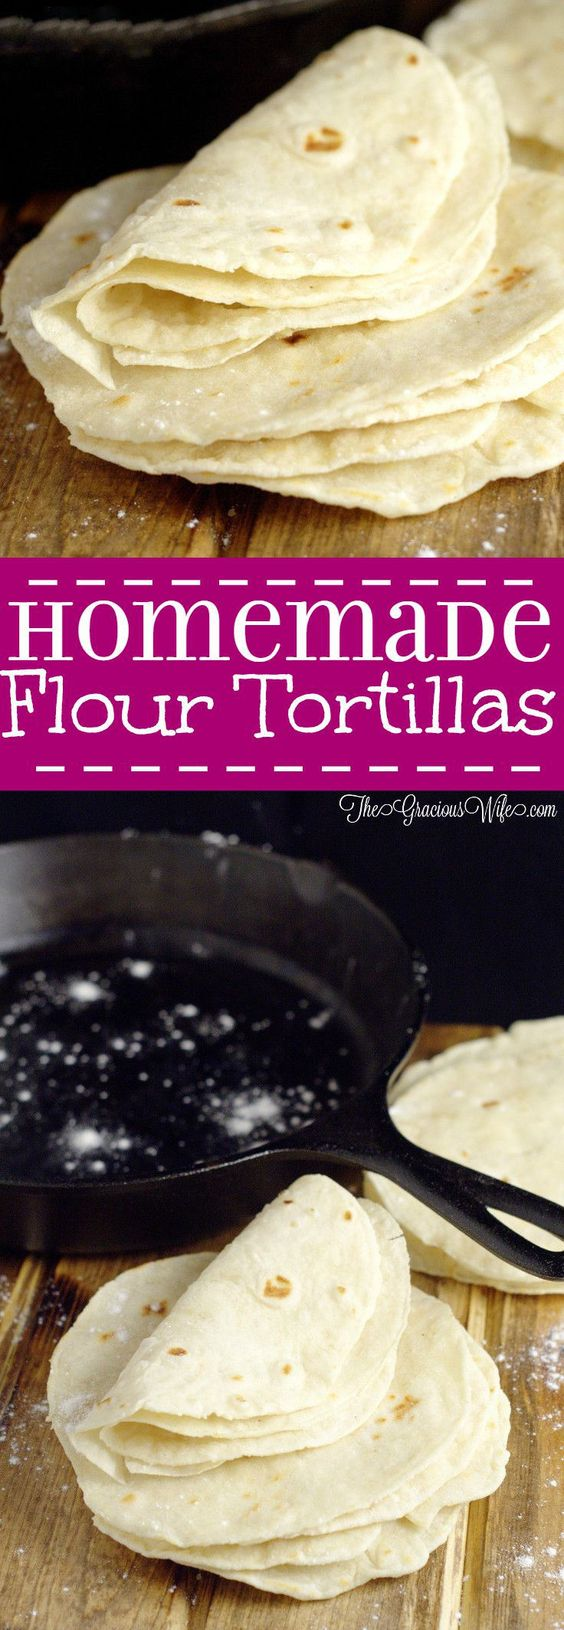 Homemade Flour Tortillas | Recipe | Homemade, Frugal and ...